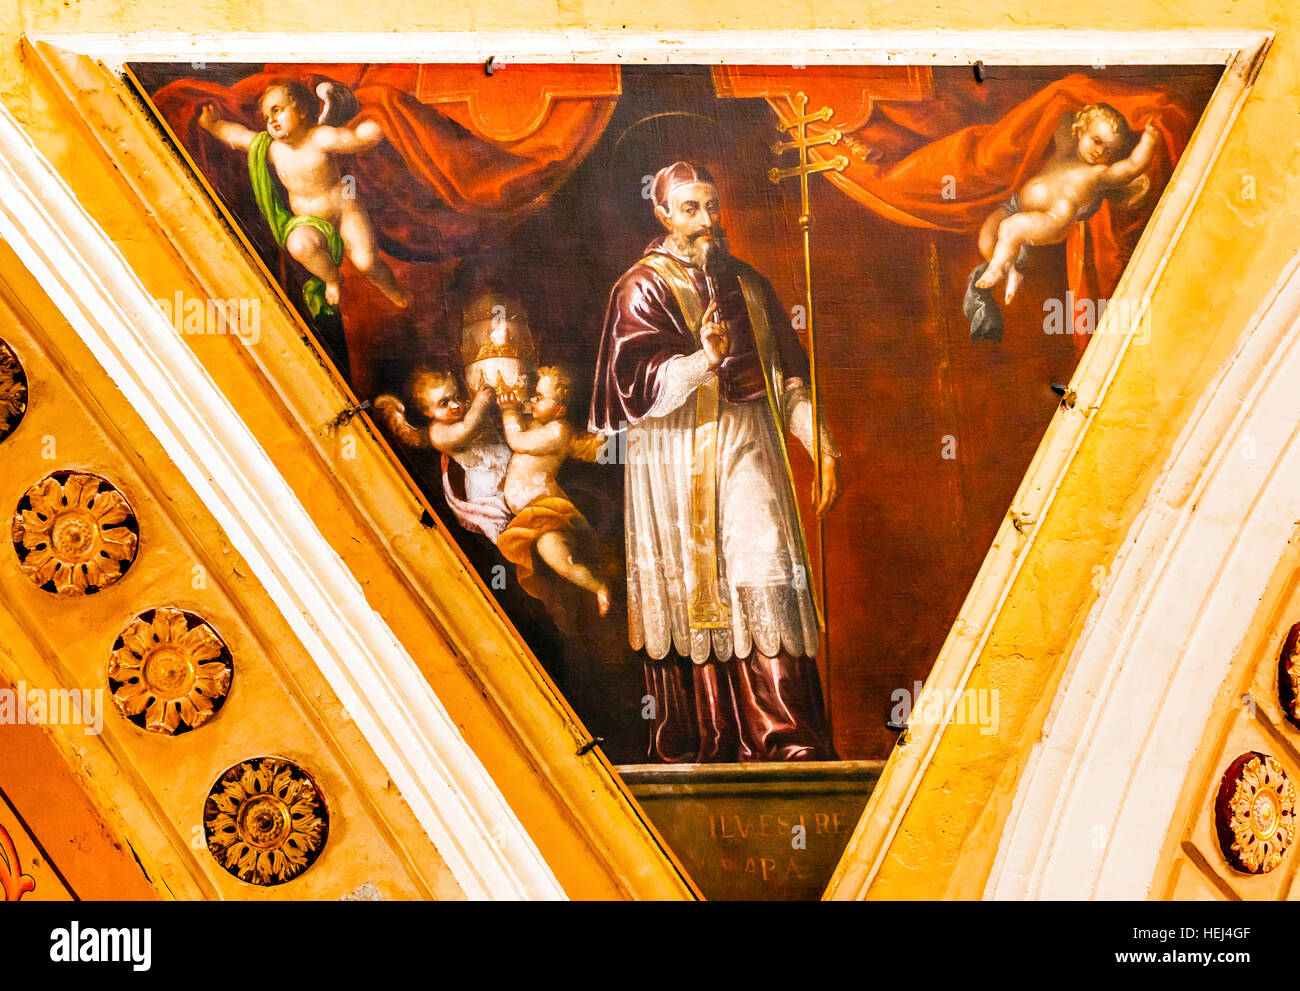 Pope Sylvester, First French Pope, Painting Our Lady of Guanajuato Basilica Altar Mary Statue Christmas Guanajuato, - Stock Image